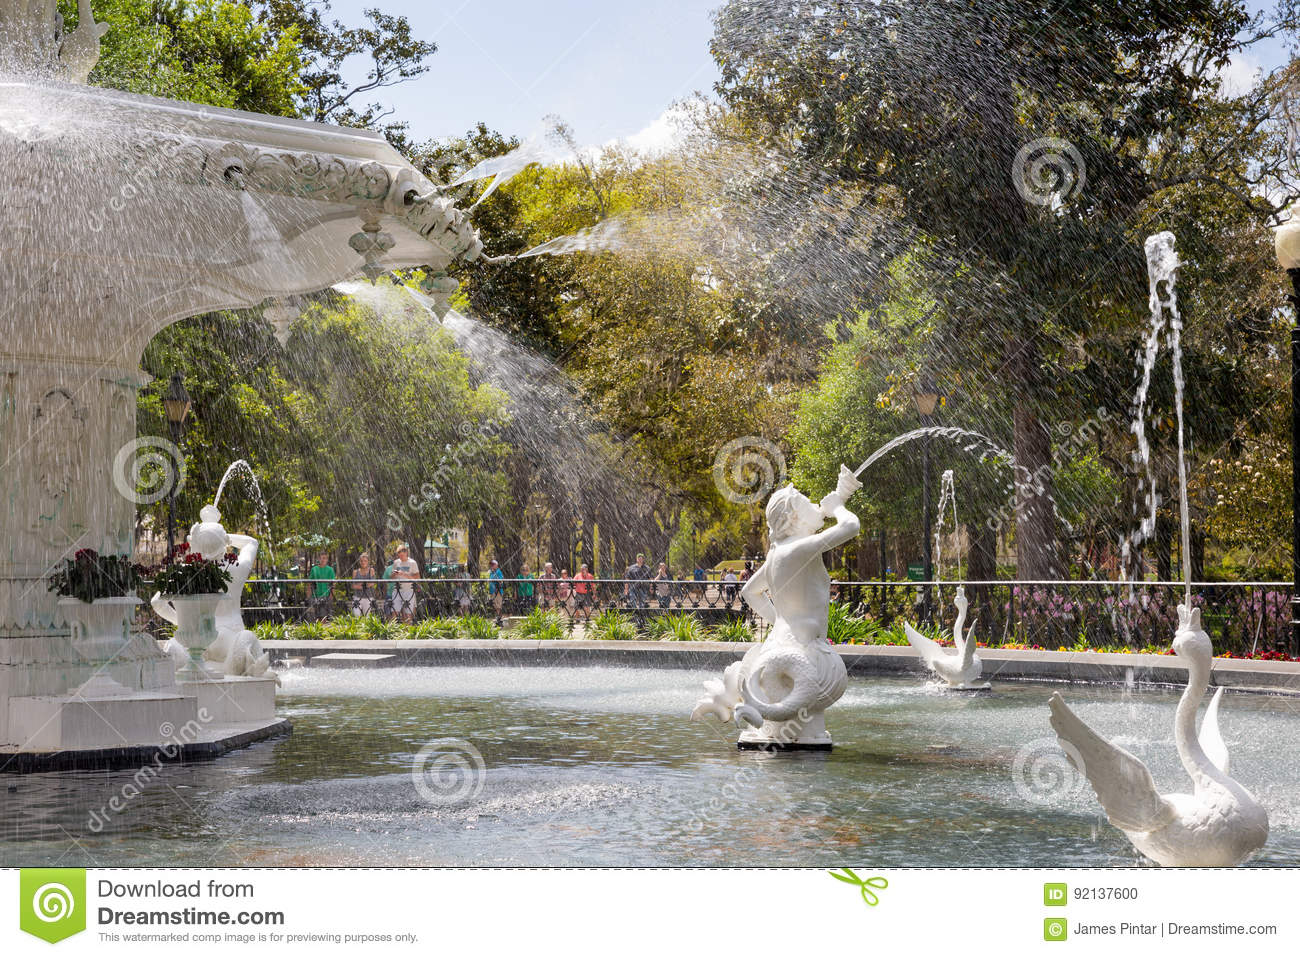 Historic Forsyth Fountain in Savannah